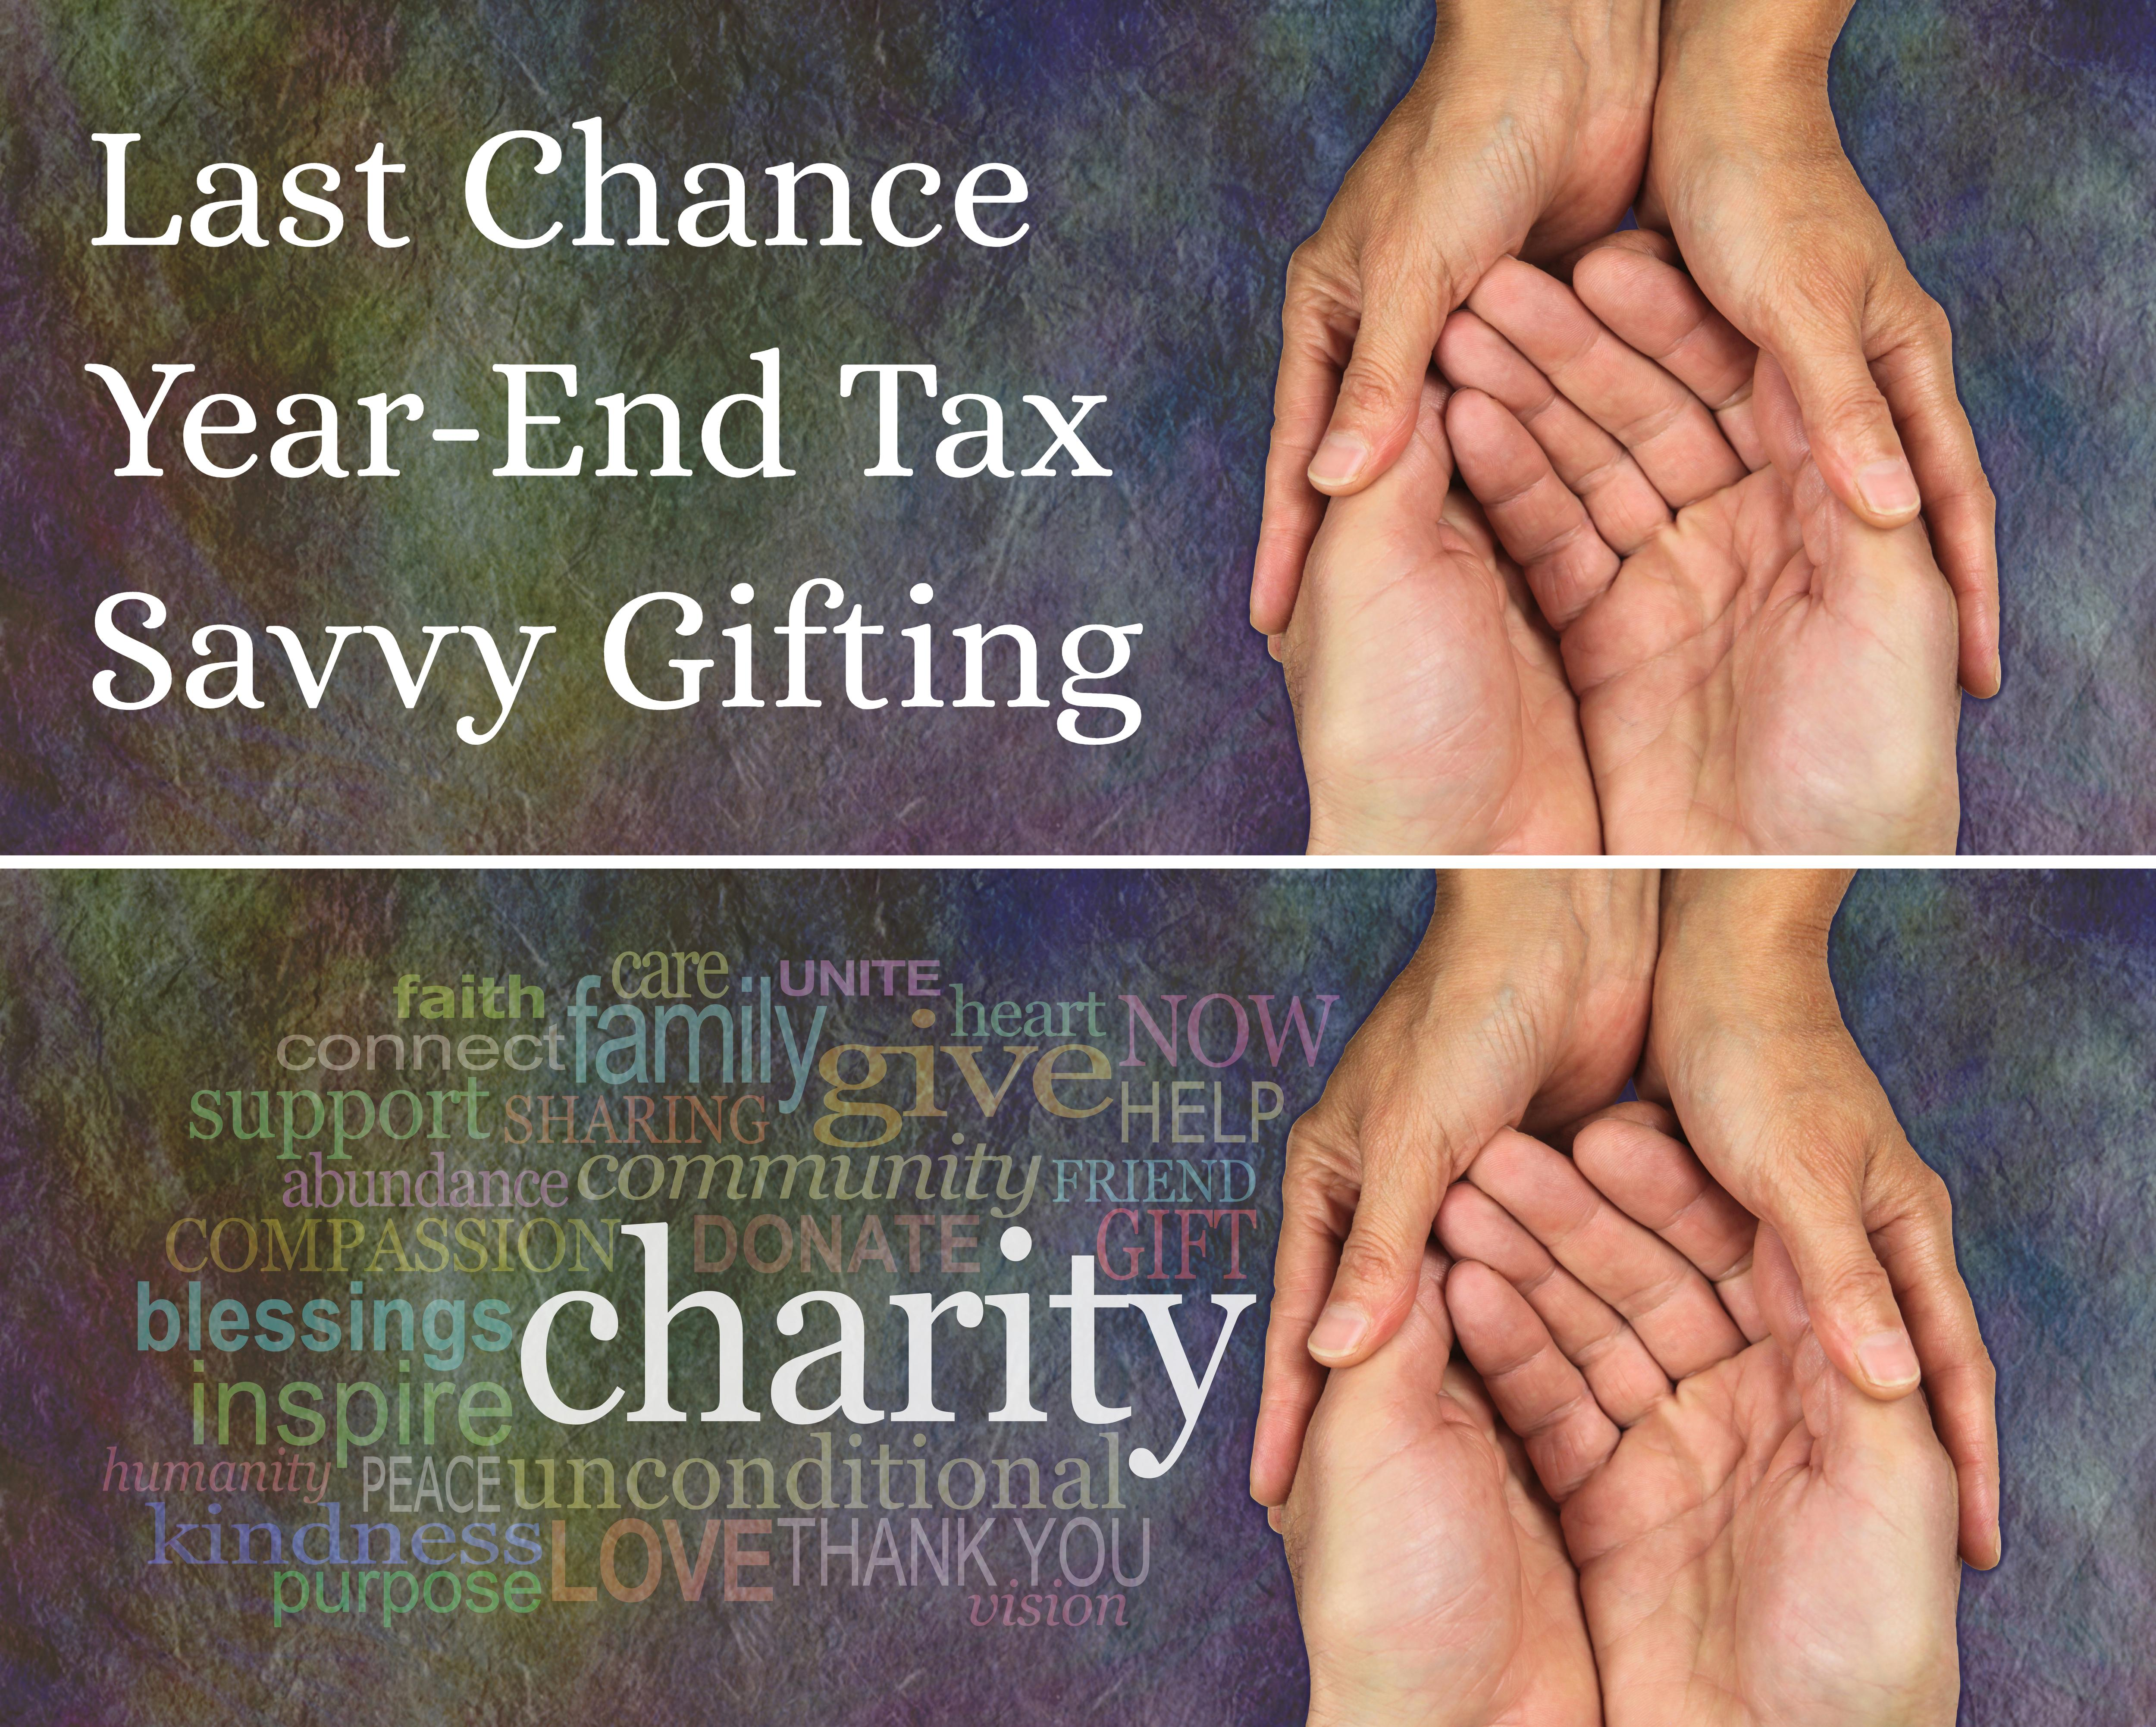 Tax-Wise Tips For Charitable Giving at Year-End in 2020 Thumbnail